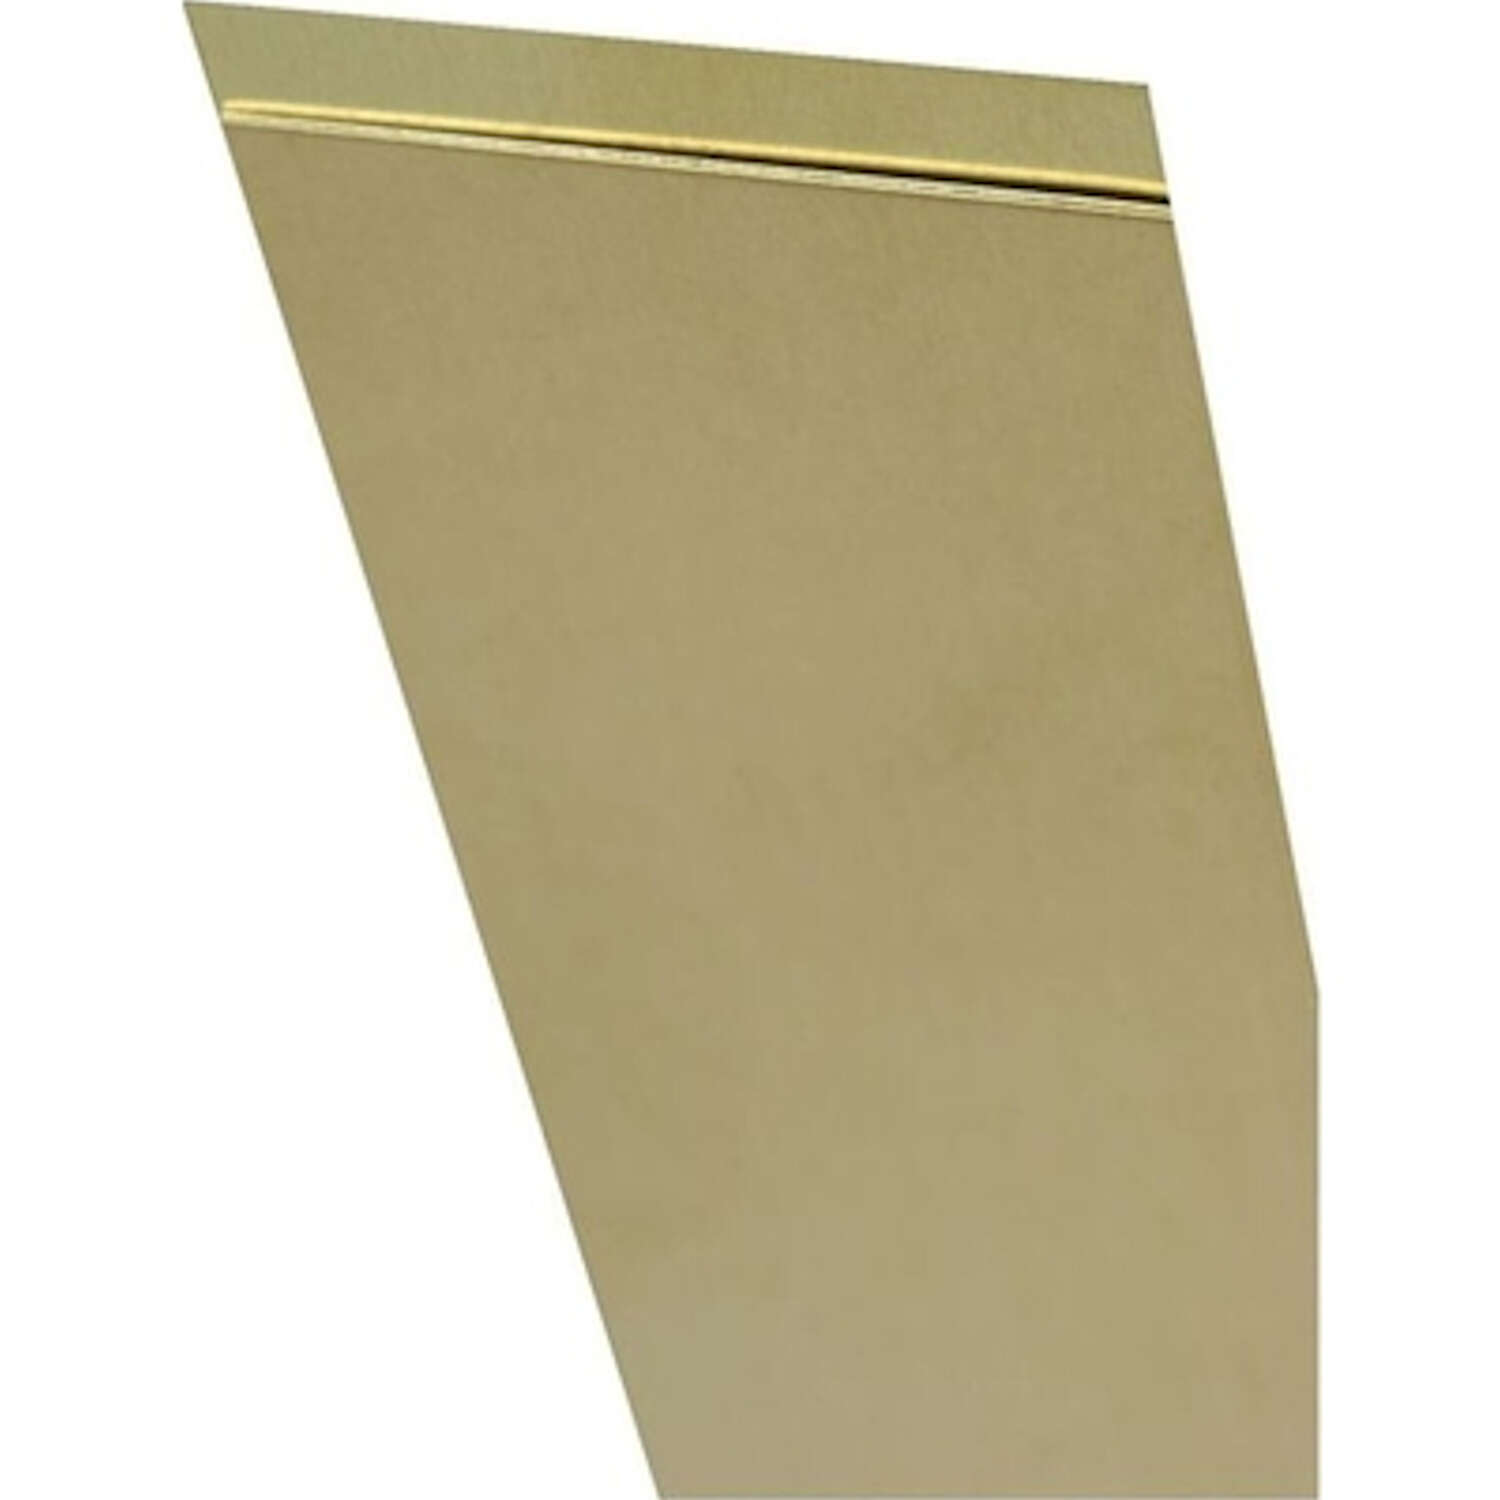 K&S Metal Strips 0.016 x 2 in. x 12 in.  Brass   For Hobbies and Model Buiding Carded